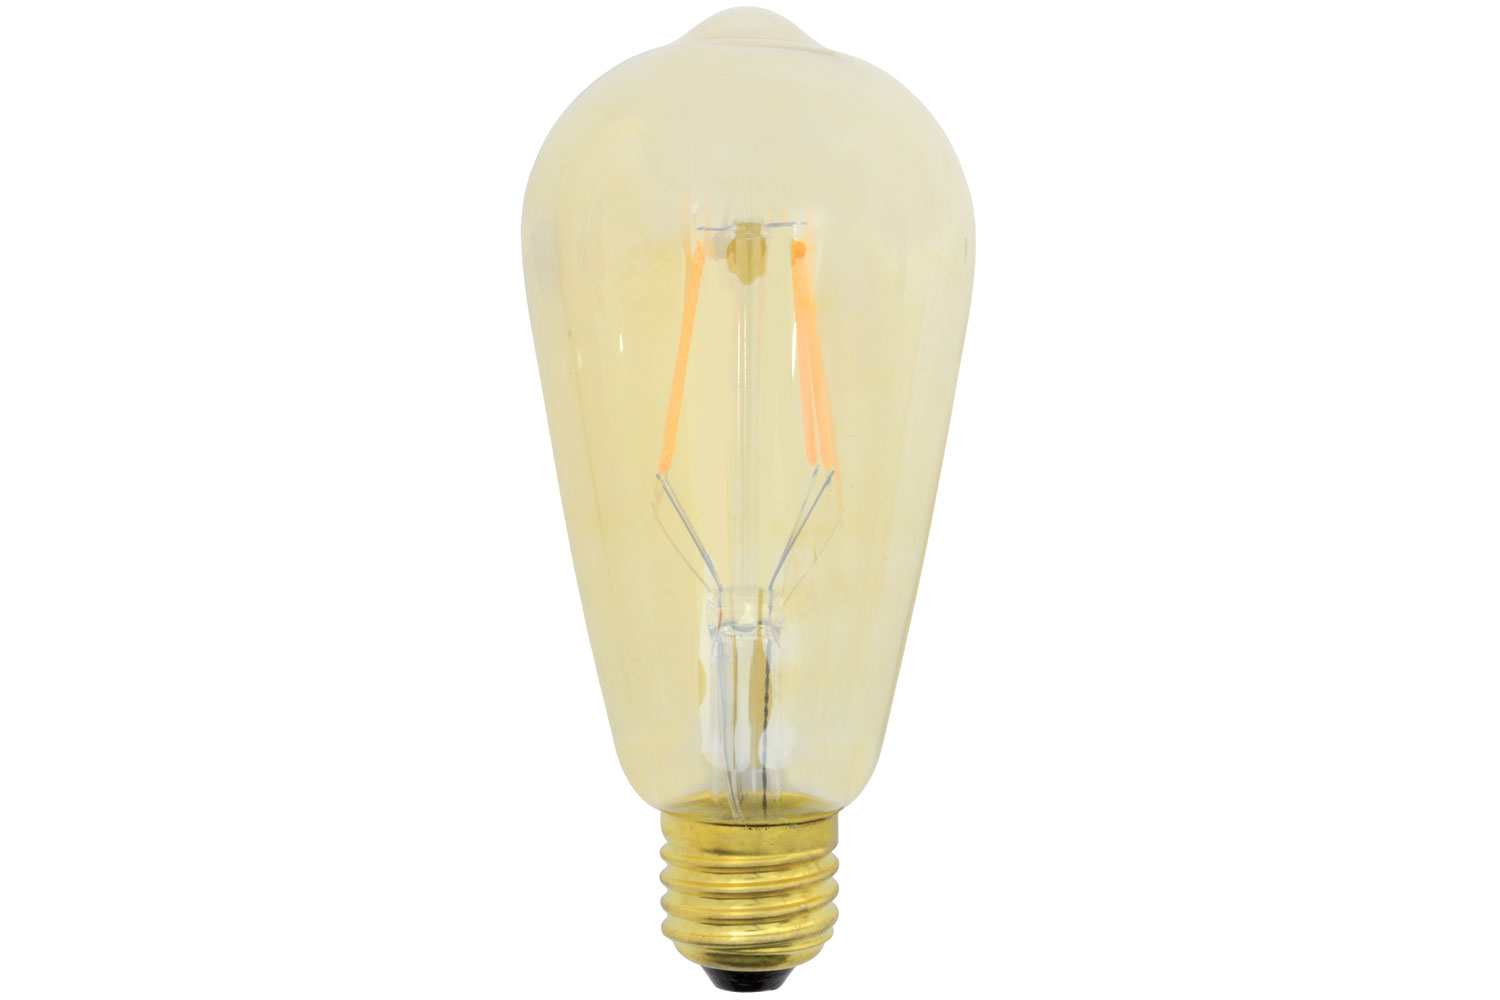 lyyt ST64 LED Filament Lamp with Amber Tinted Glass E27 4W Dimmable